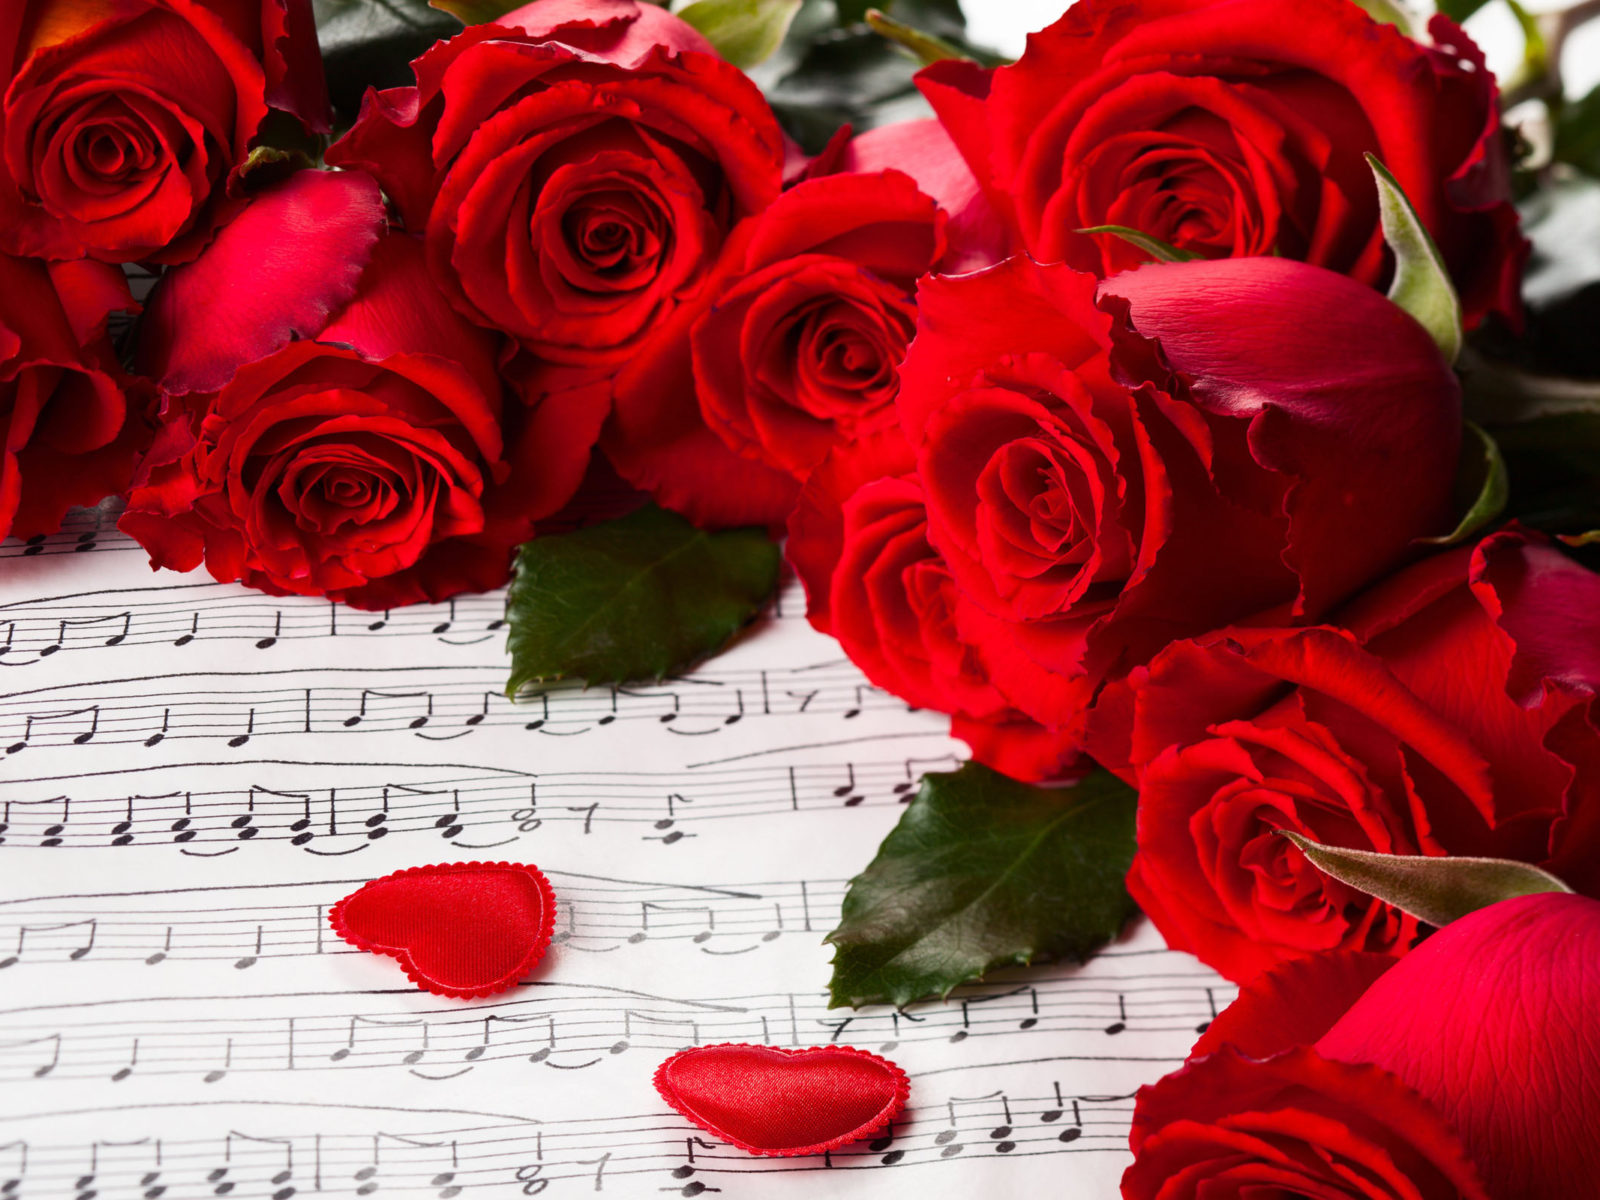 Cute Cats Wallpapers For Iphone Hearts Valentines Day Red Roses Nature For You Roses Music